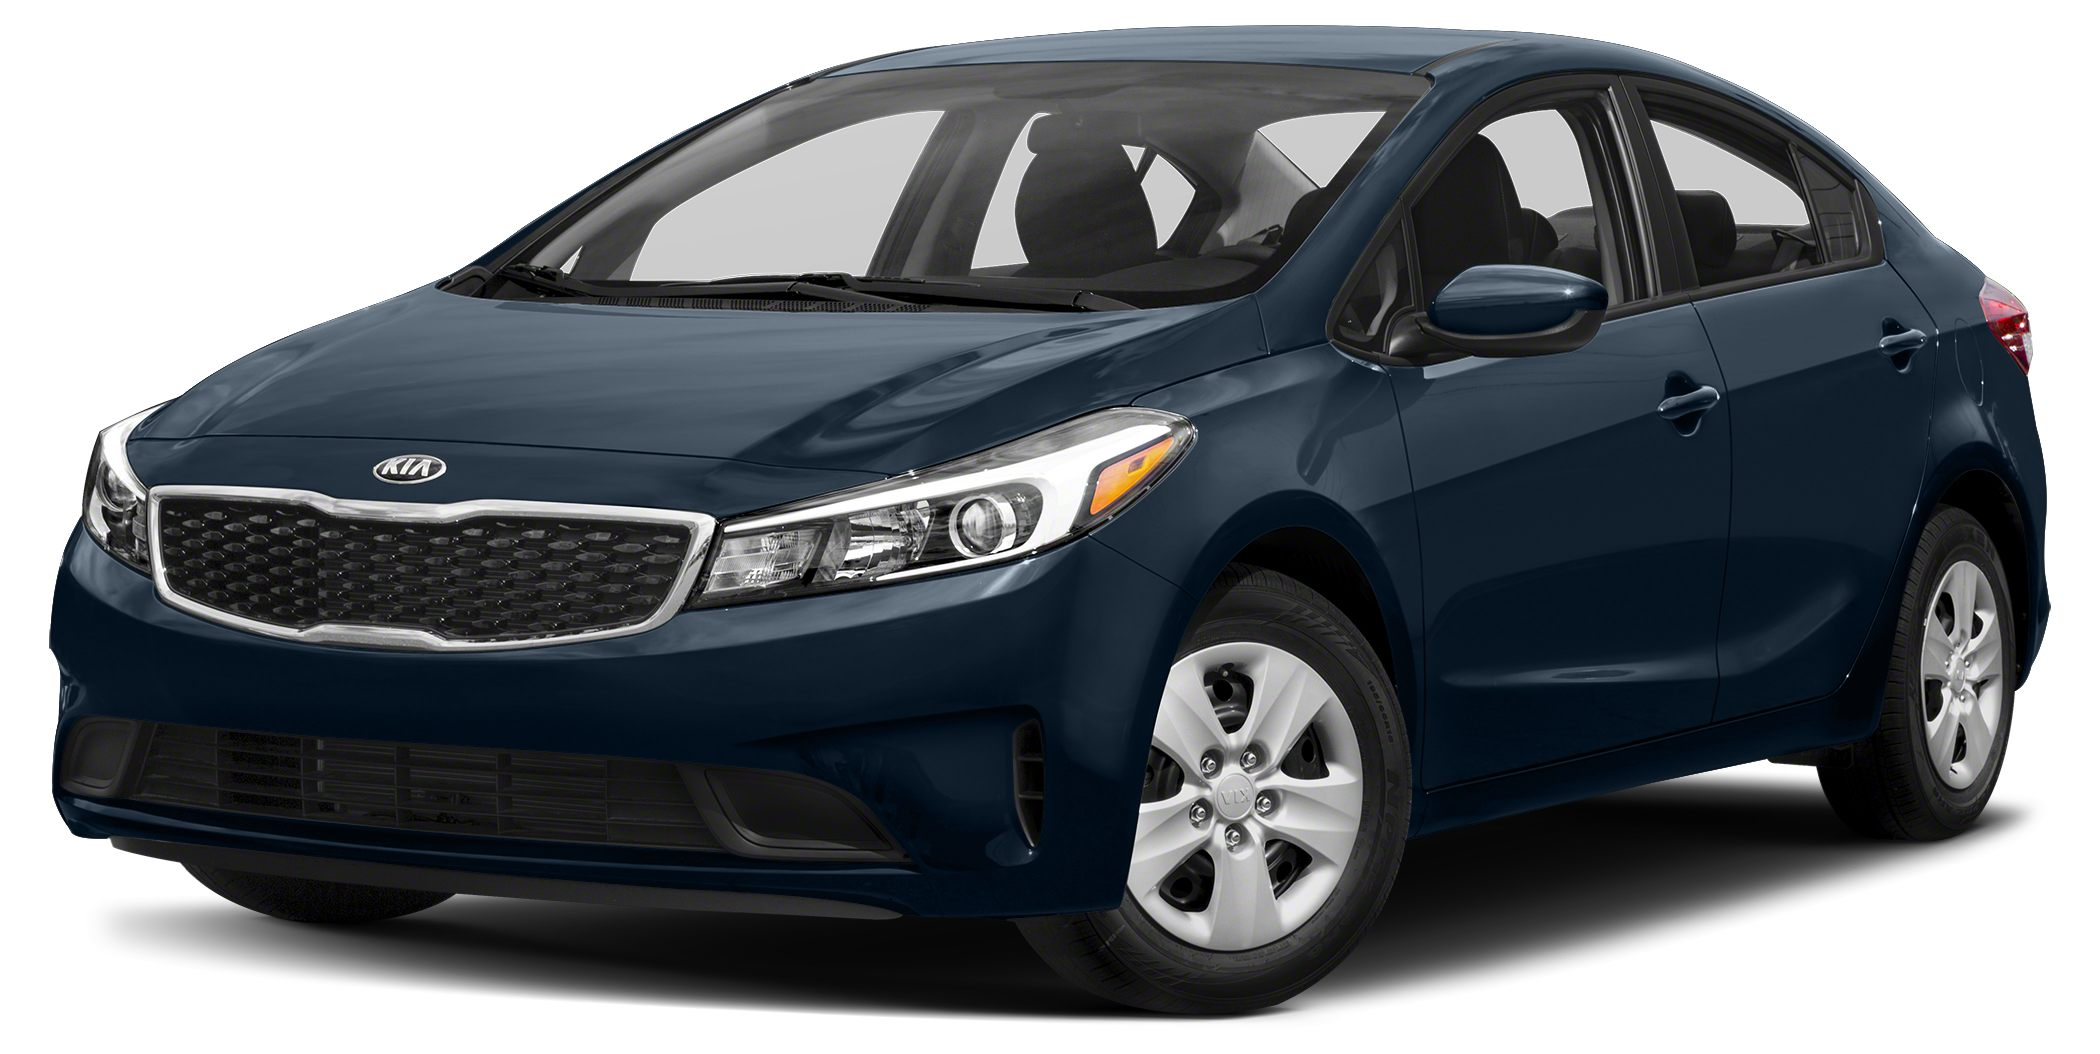 2017 Kia Forte EX Miles 21Color Deep Sea Blue Stock SB16351 VIN 3KPFL4A82HE003014